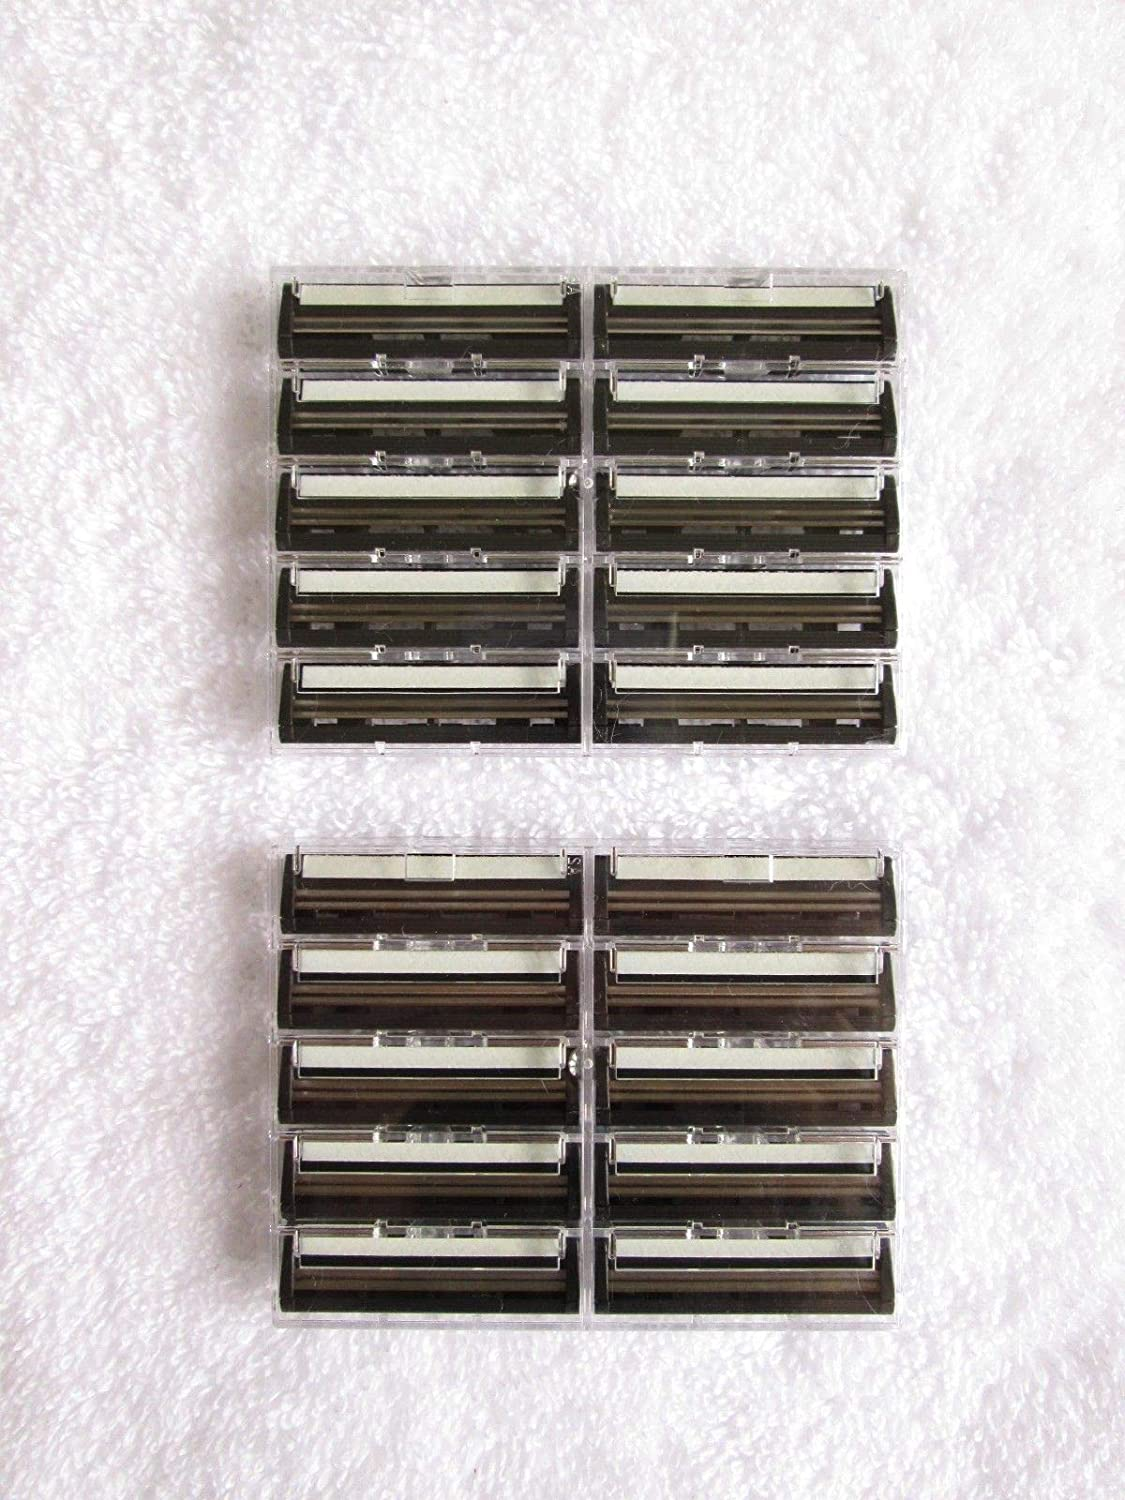 20 twin blade cartridge razor blades, compatible with most standard razors, slide-on or clip-on Number One Interiors